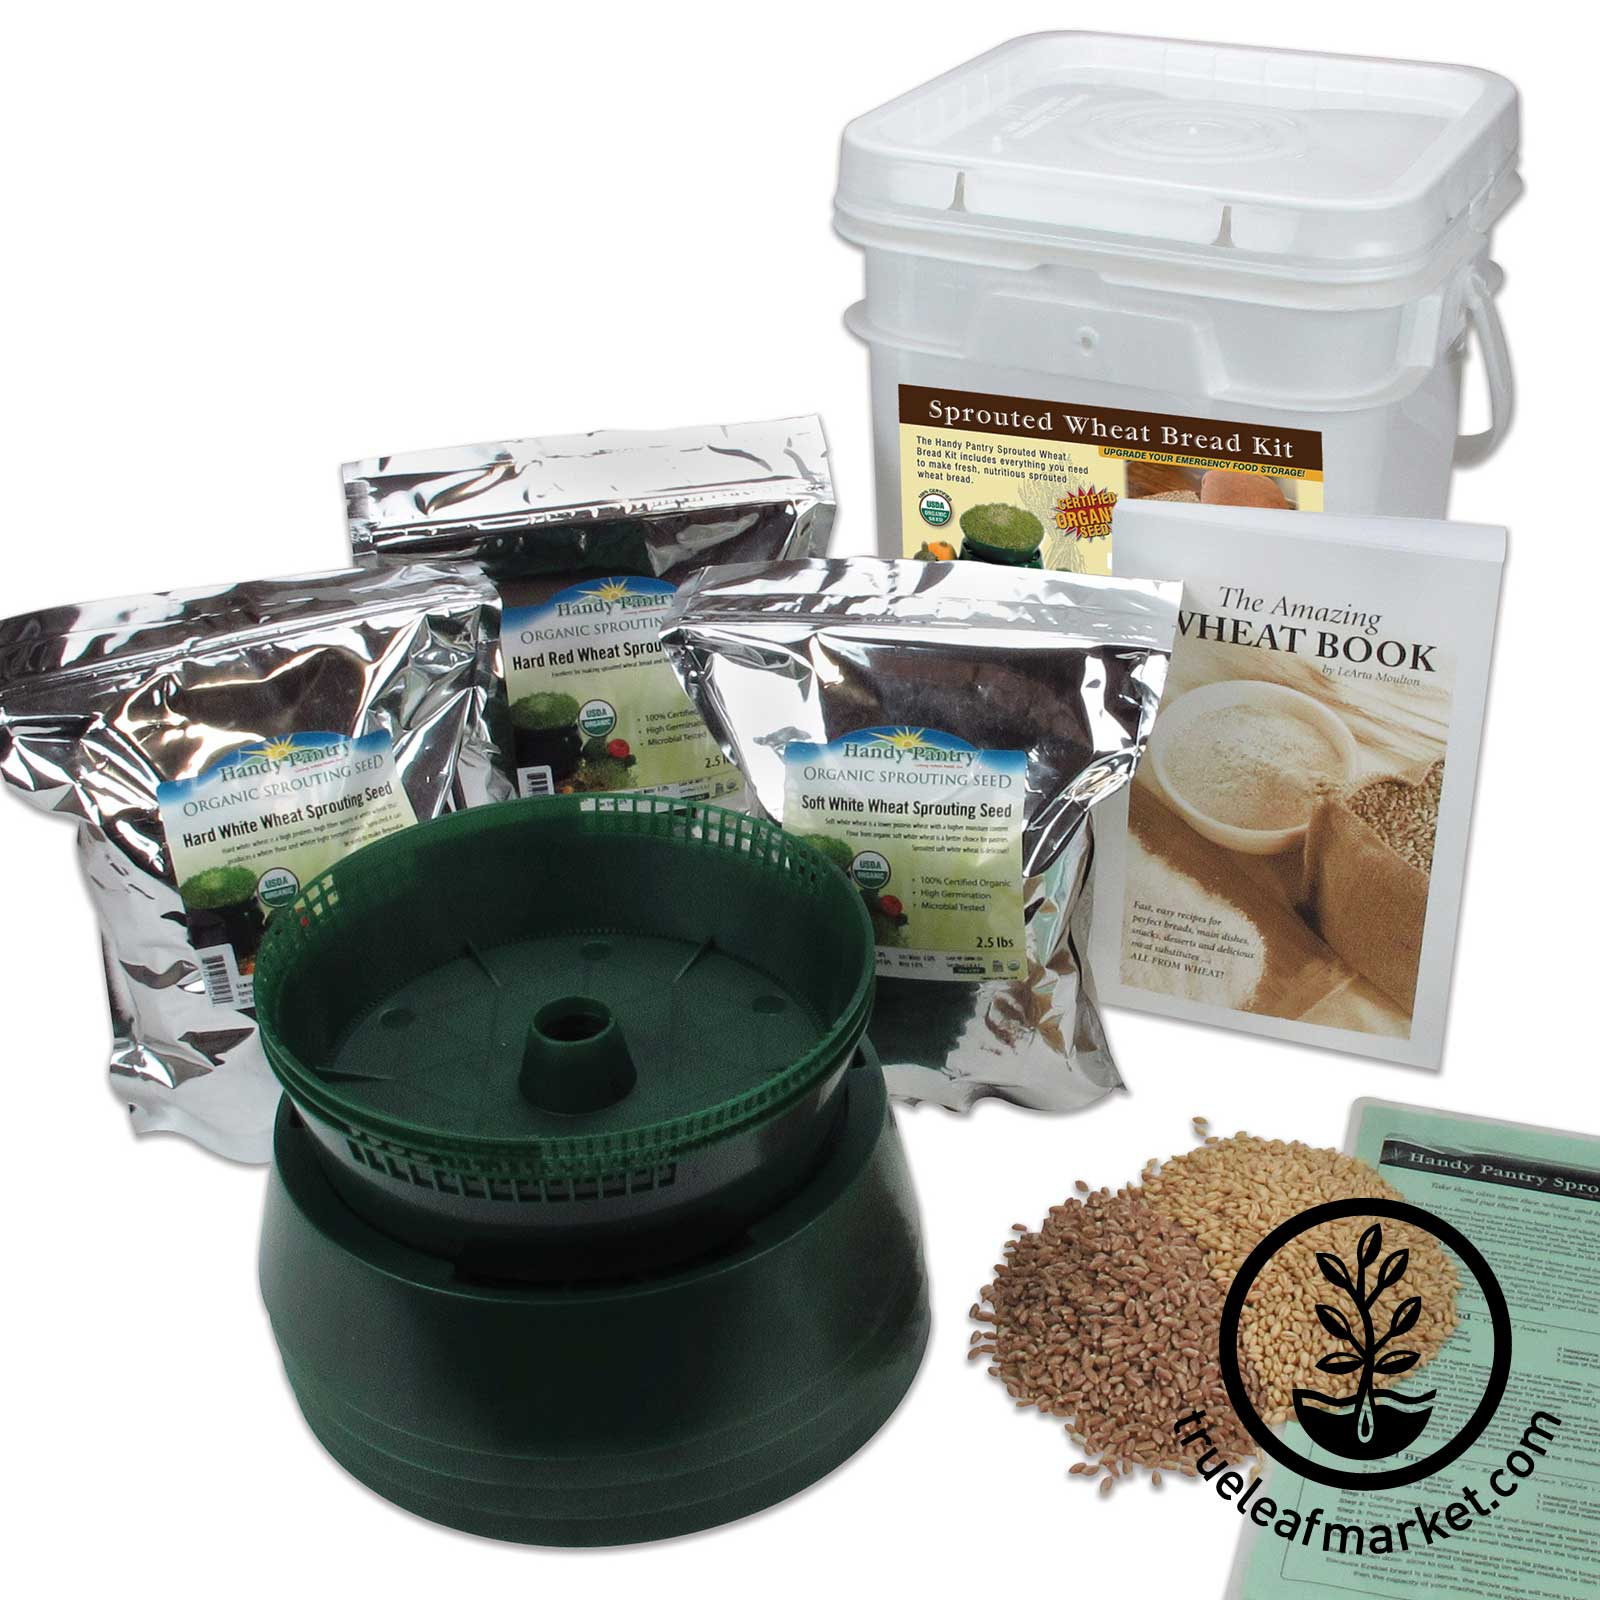 Organic Sprouted Grain Bread Kit sprouted grain bread, sprouted wheat bread